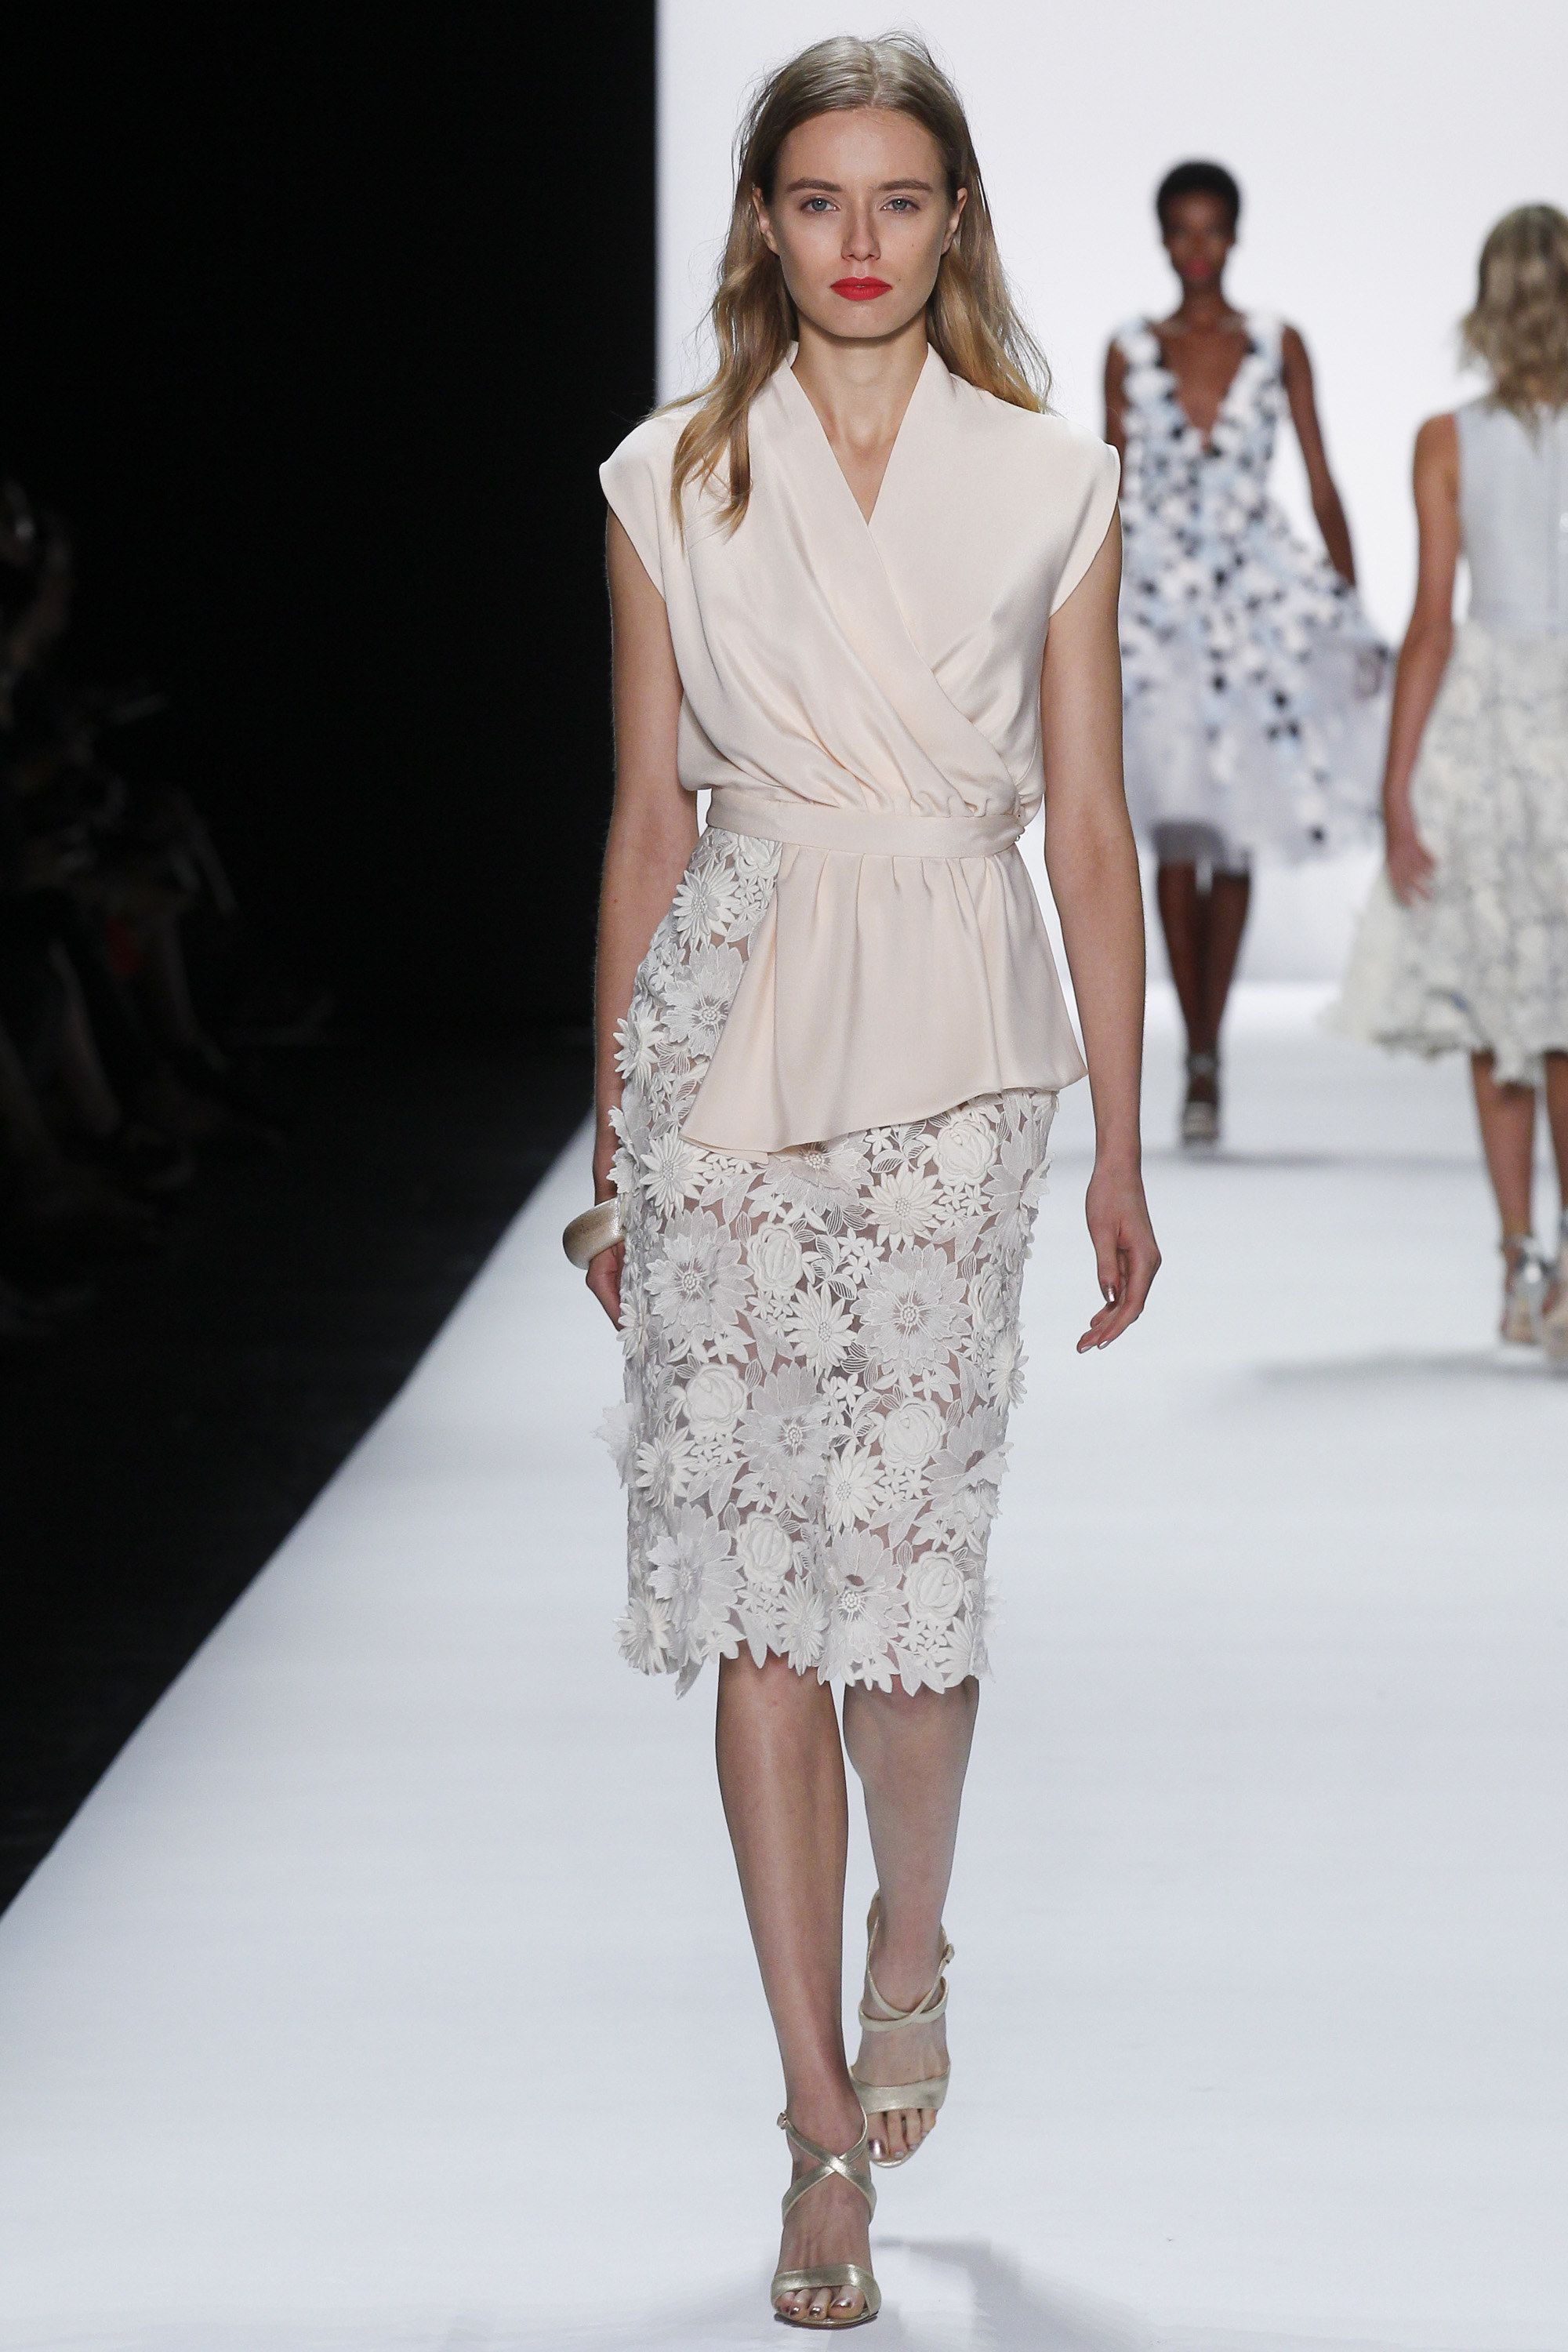 #NYFW #Spring2016 #NewYorkFashionWeek Badgley Mischka Spring 2016 Ready-to-Wear Collection Photos - Vogue